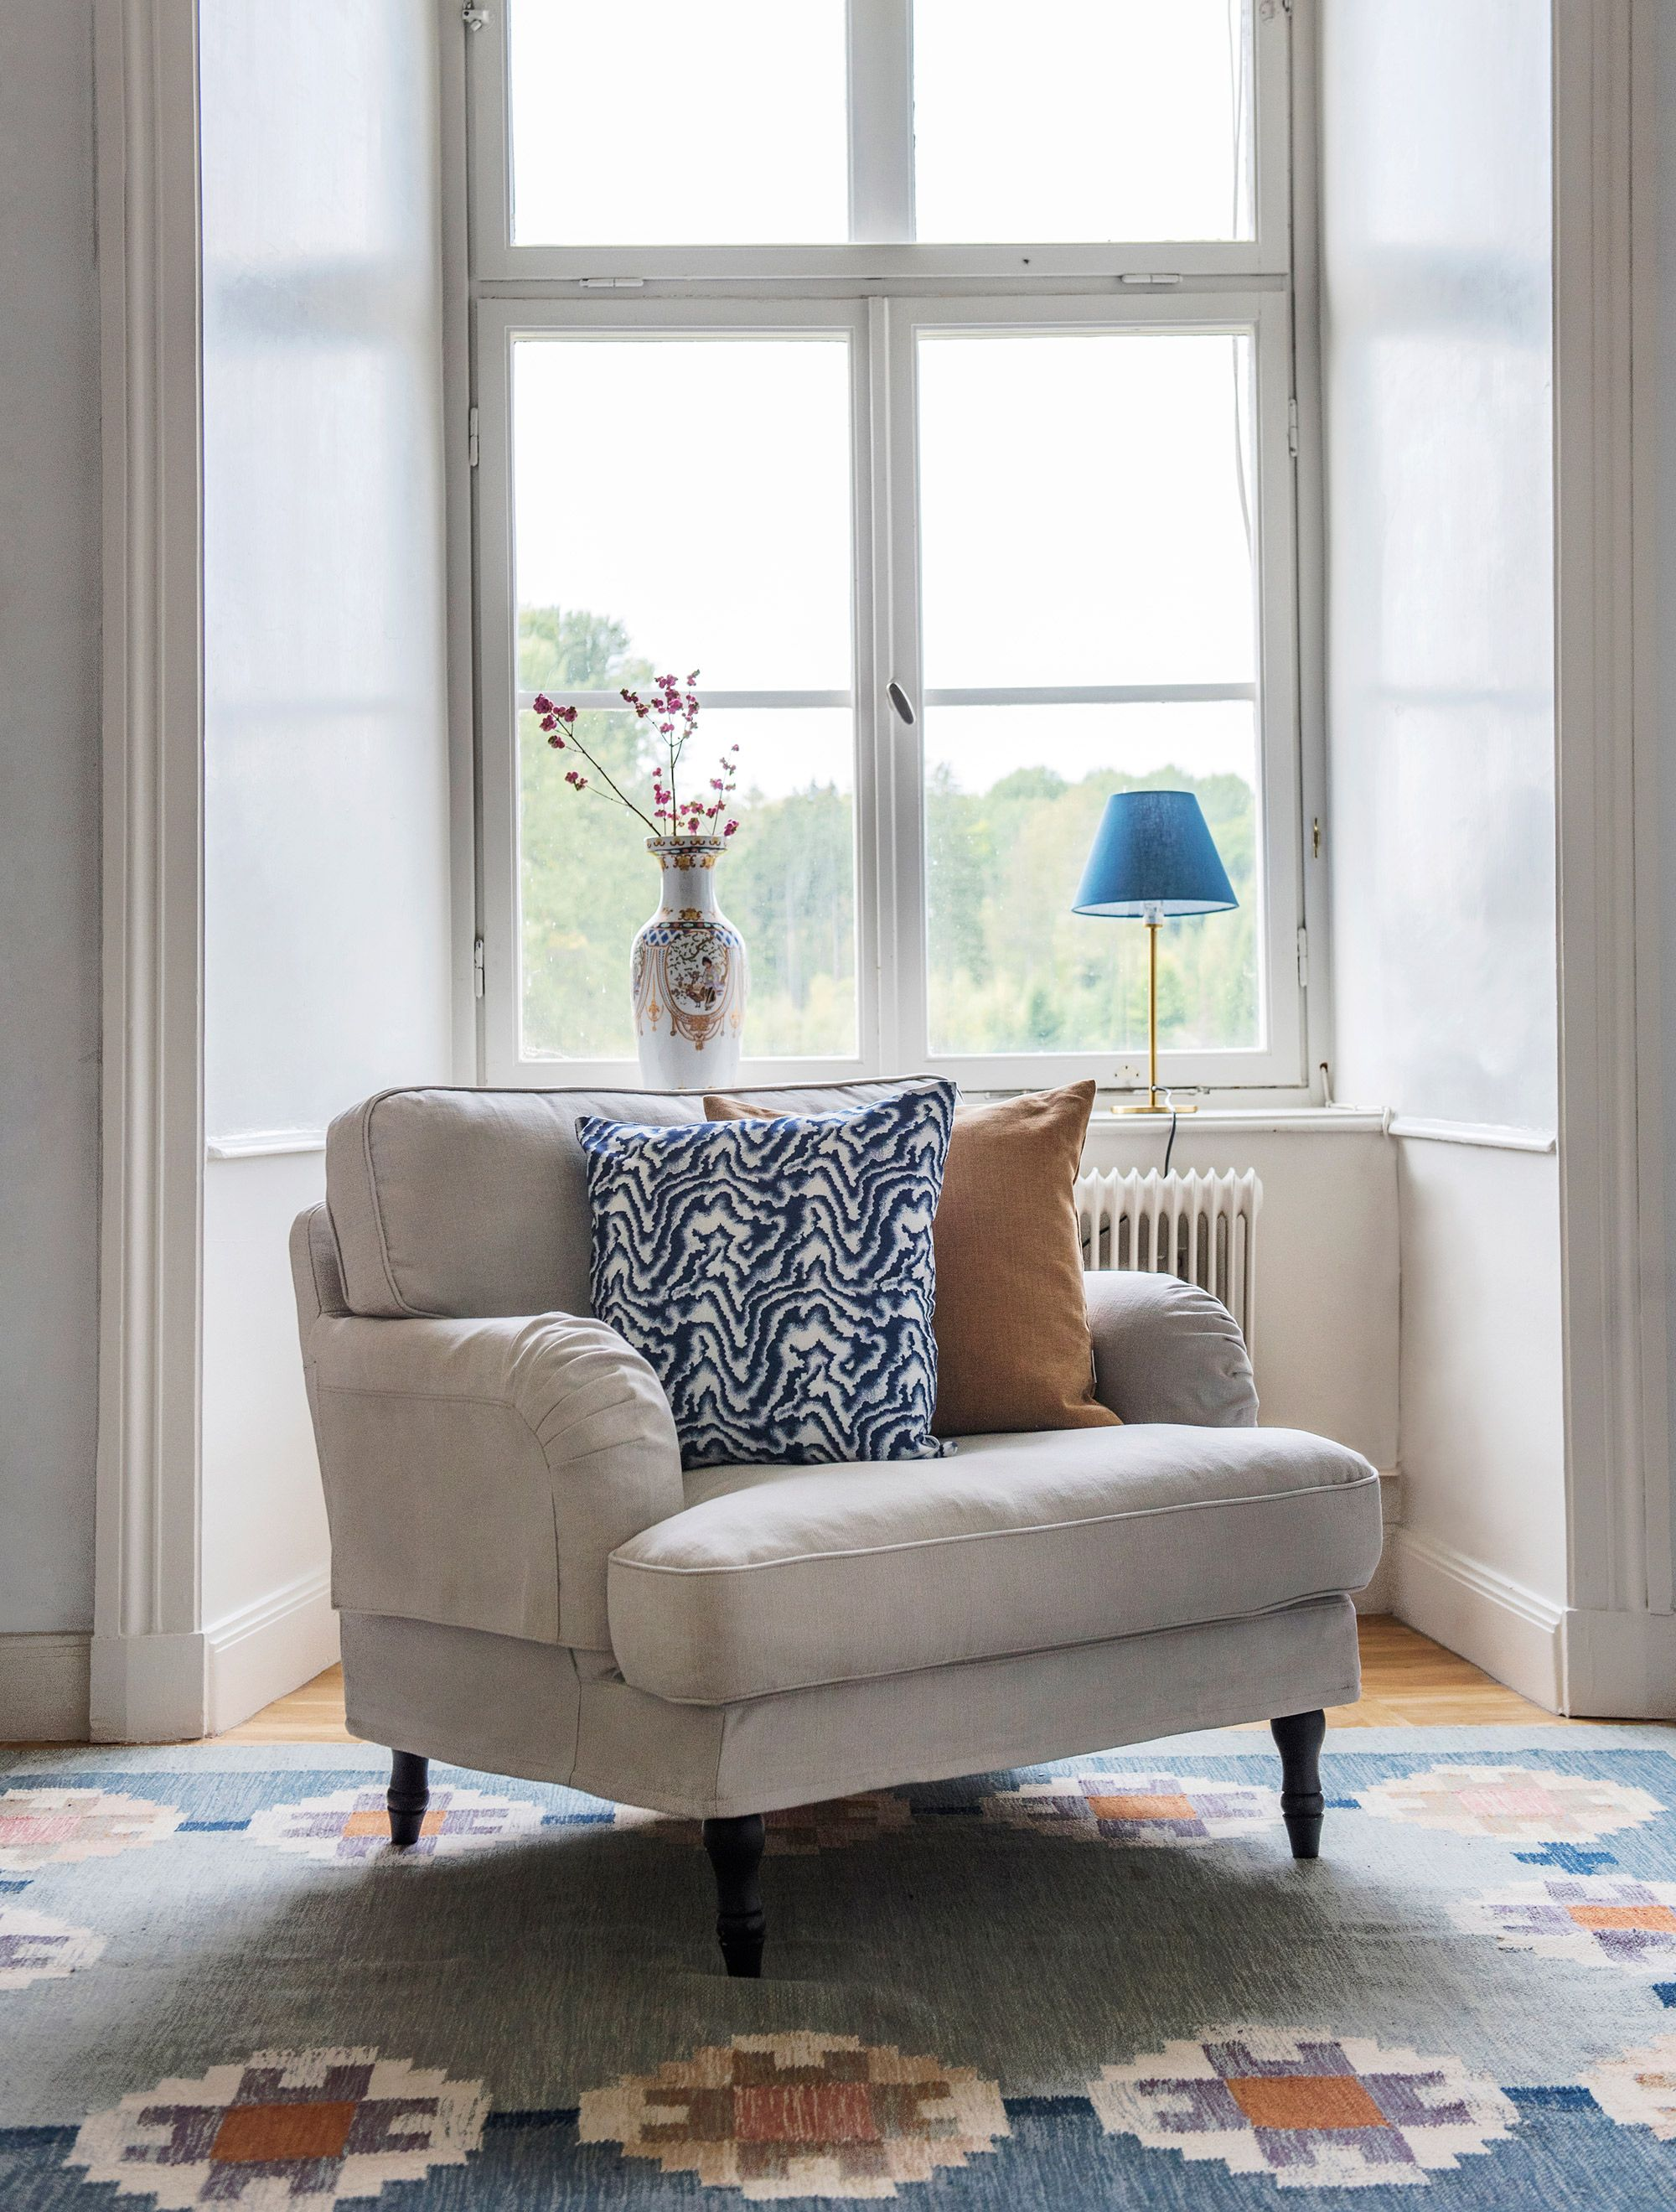 ikea stocksund chair covers beach chairs at walgreens armchair cover new project home pinterest howard with a bemz x romo elegant windows patterned rug